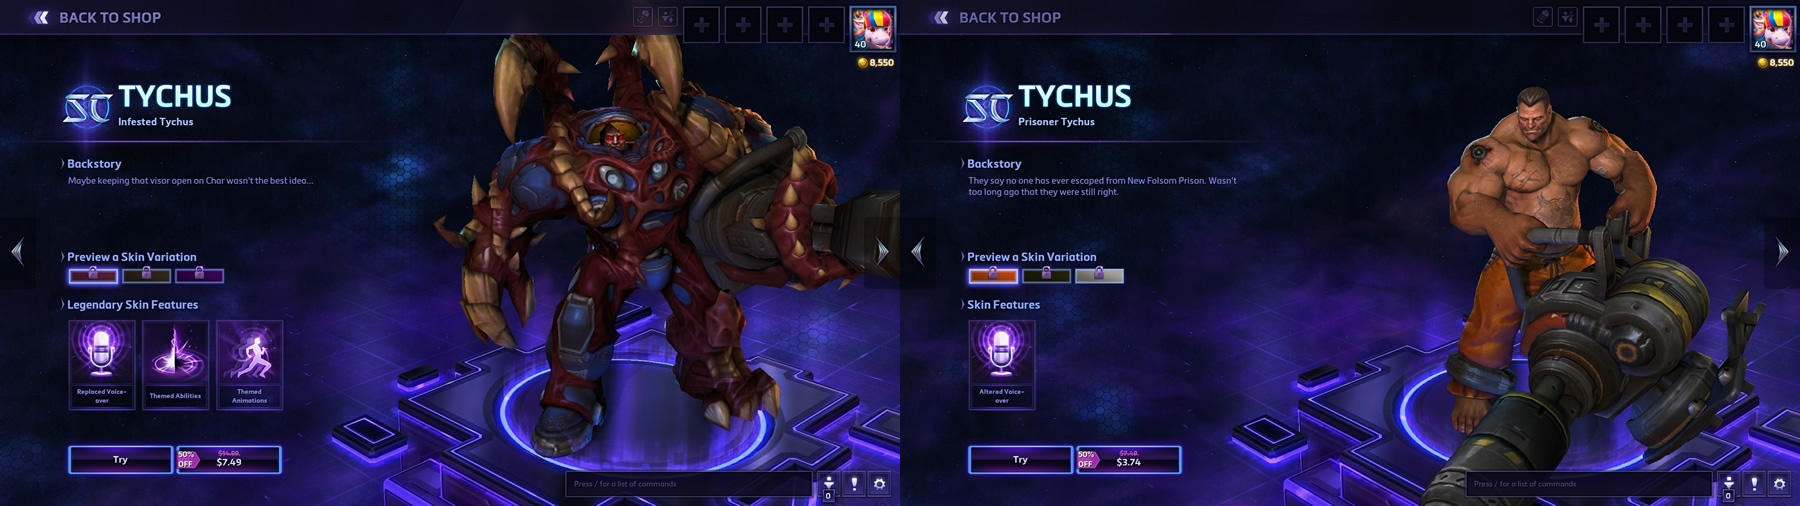 Infested Tychus: $7.49 / Prisoner Tychus: $3.74